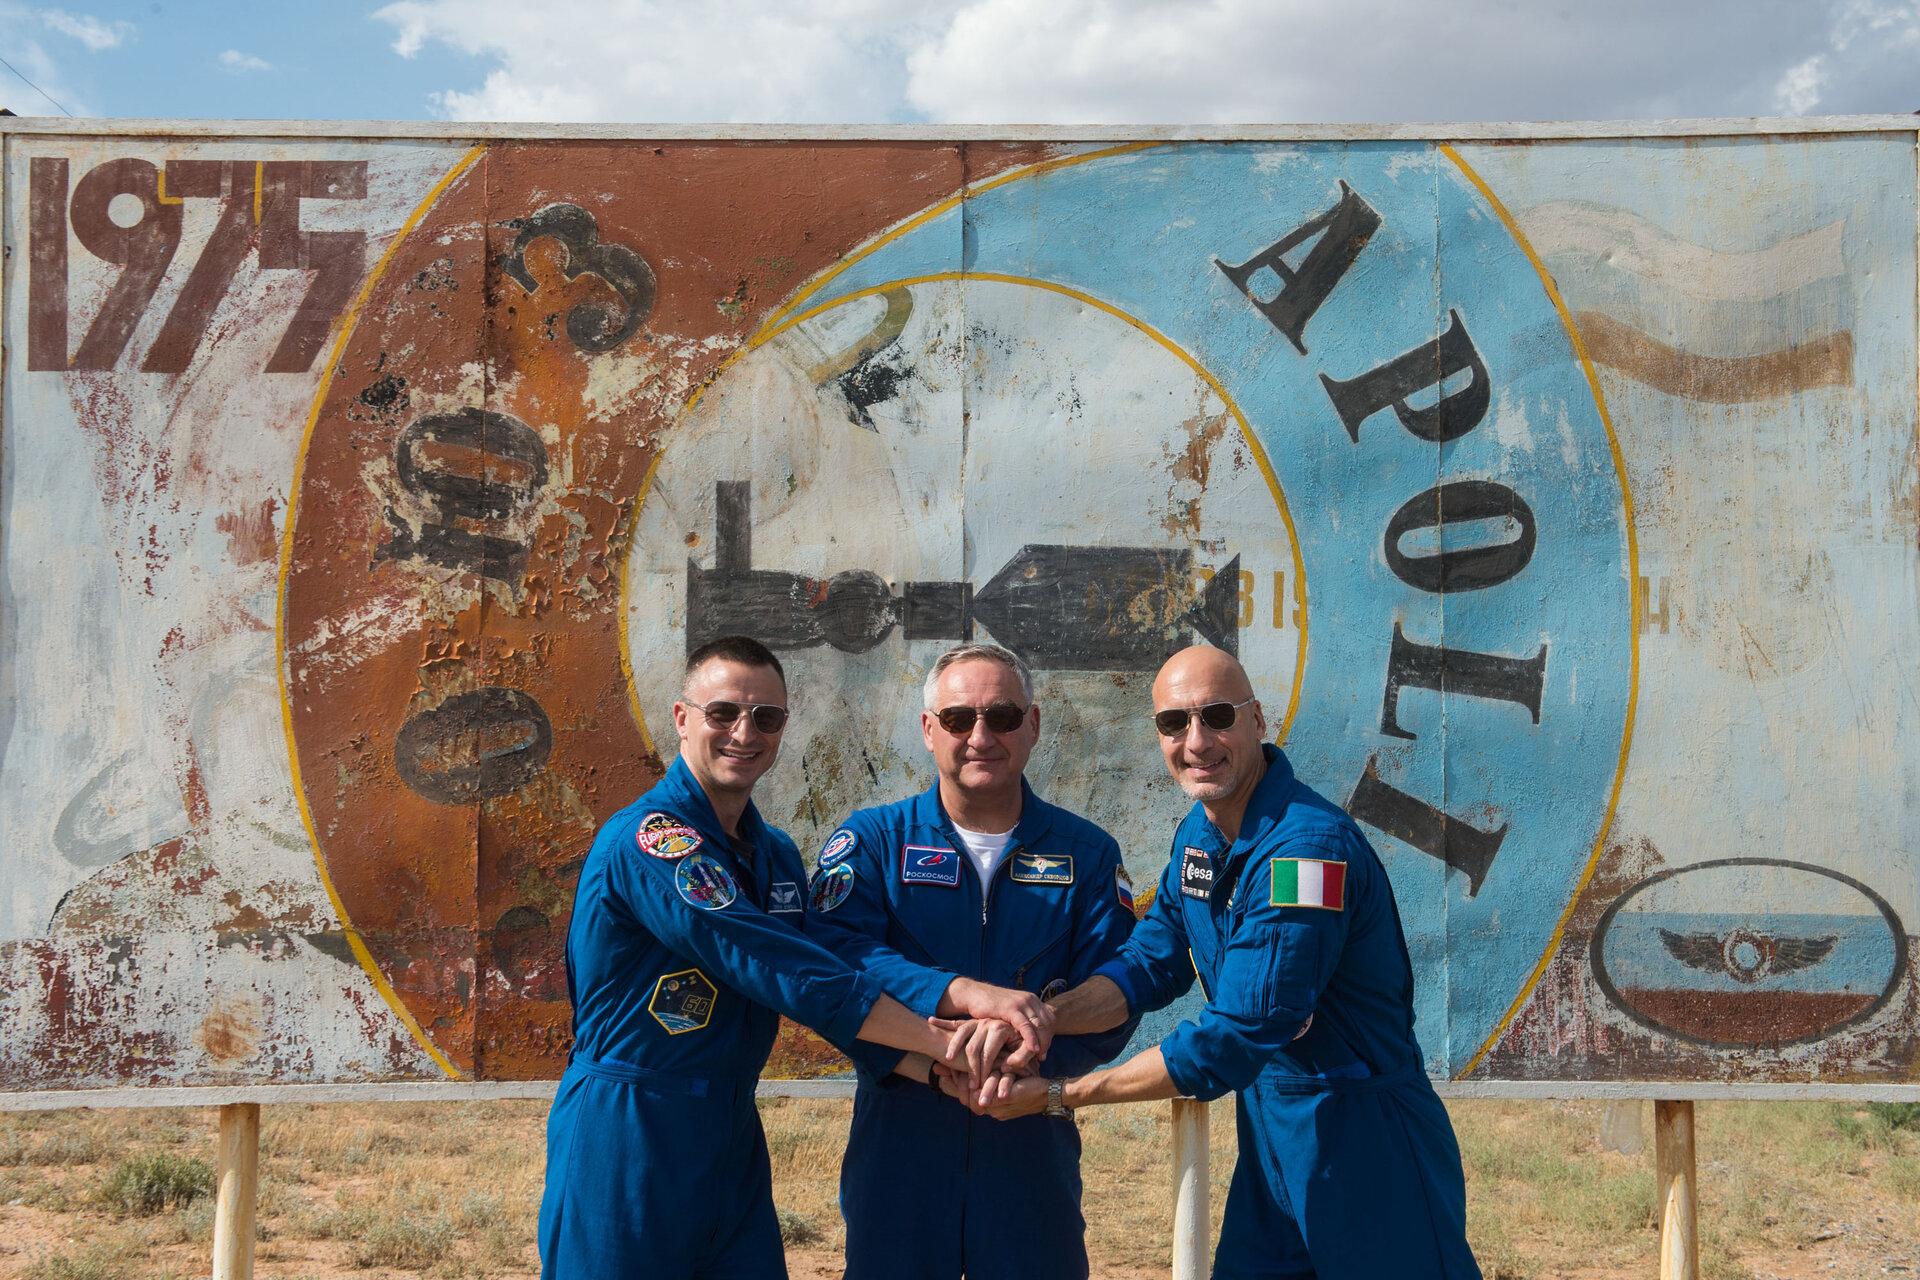 Expedition 60 crewmembers in front of a mural of the 1975 Apollo-Soyuz mission